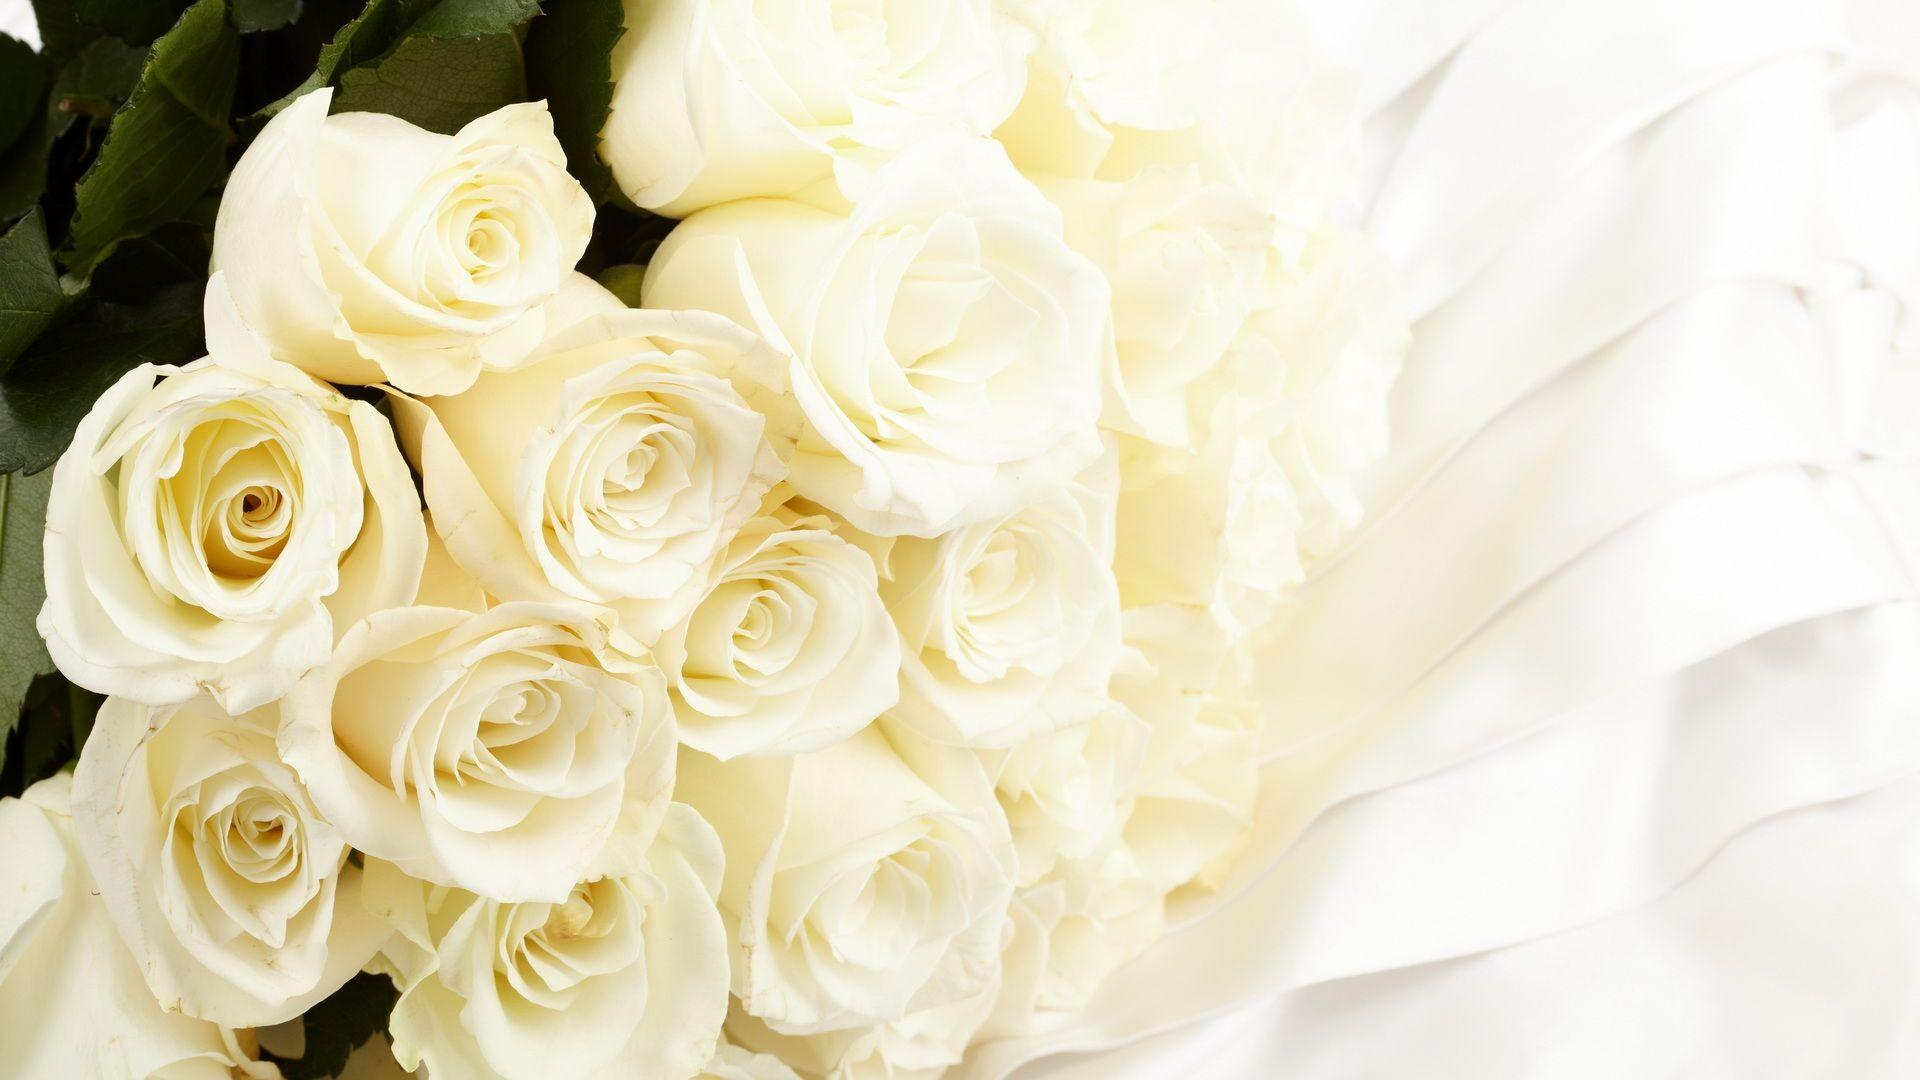 White roses wallpapers wallpaper cave pure white rose wallpaper colors wallpaper 34512060 fanpop mightylinksfo